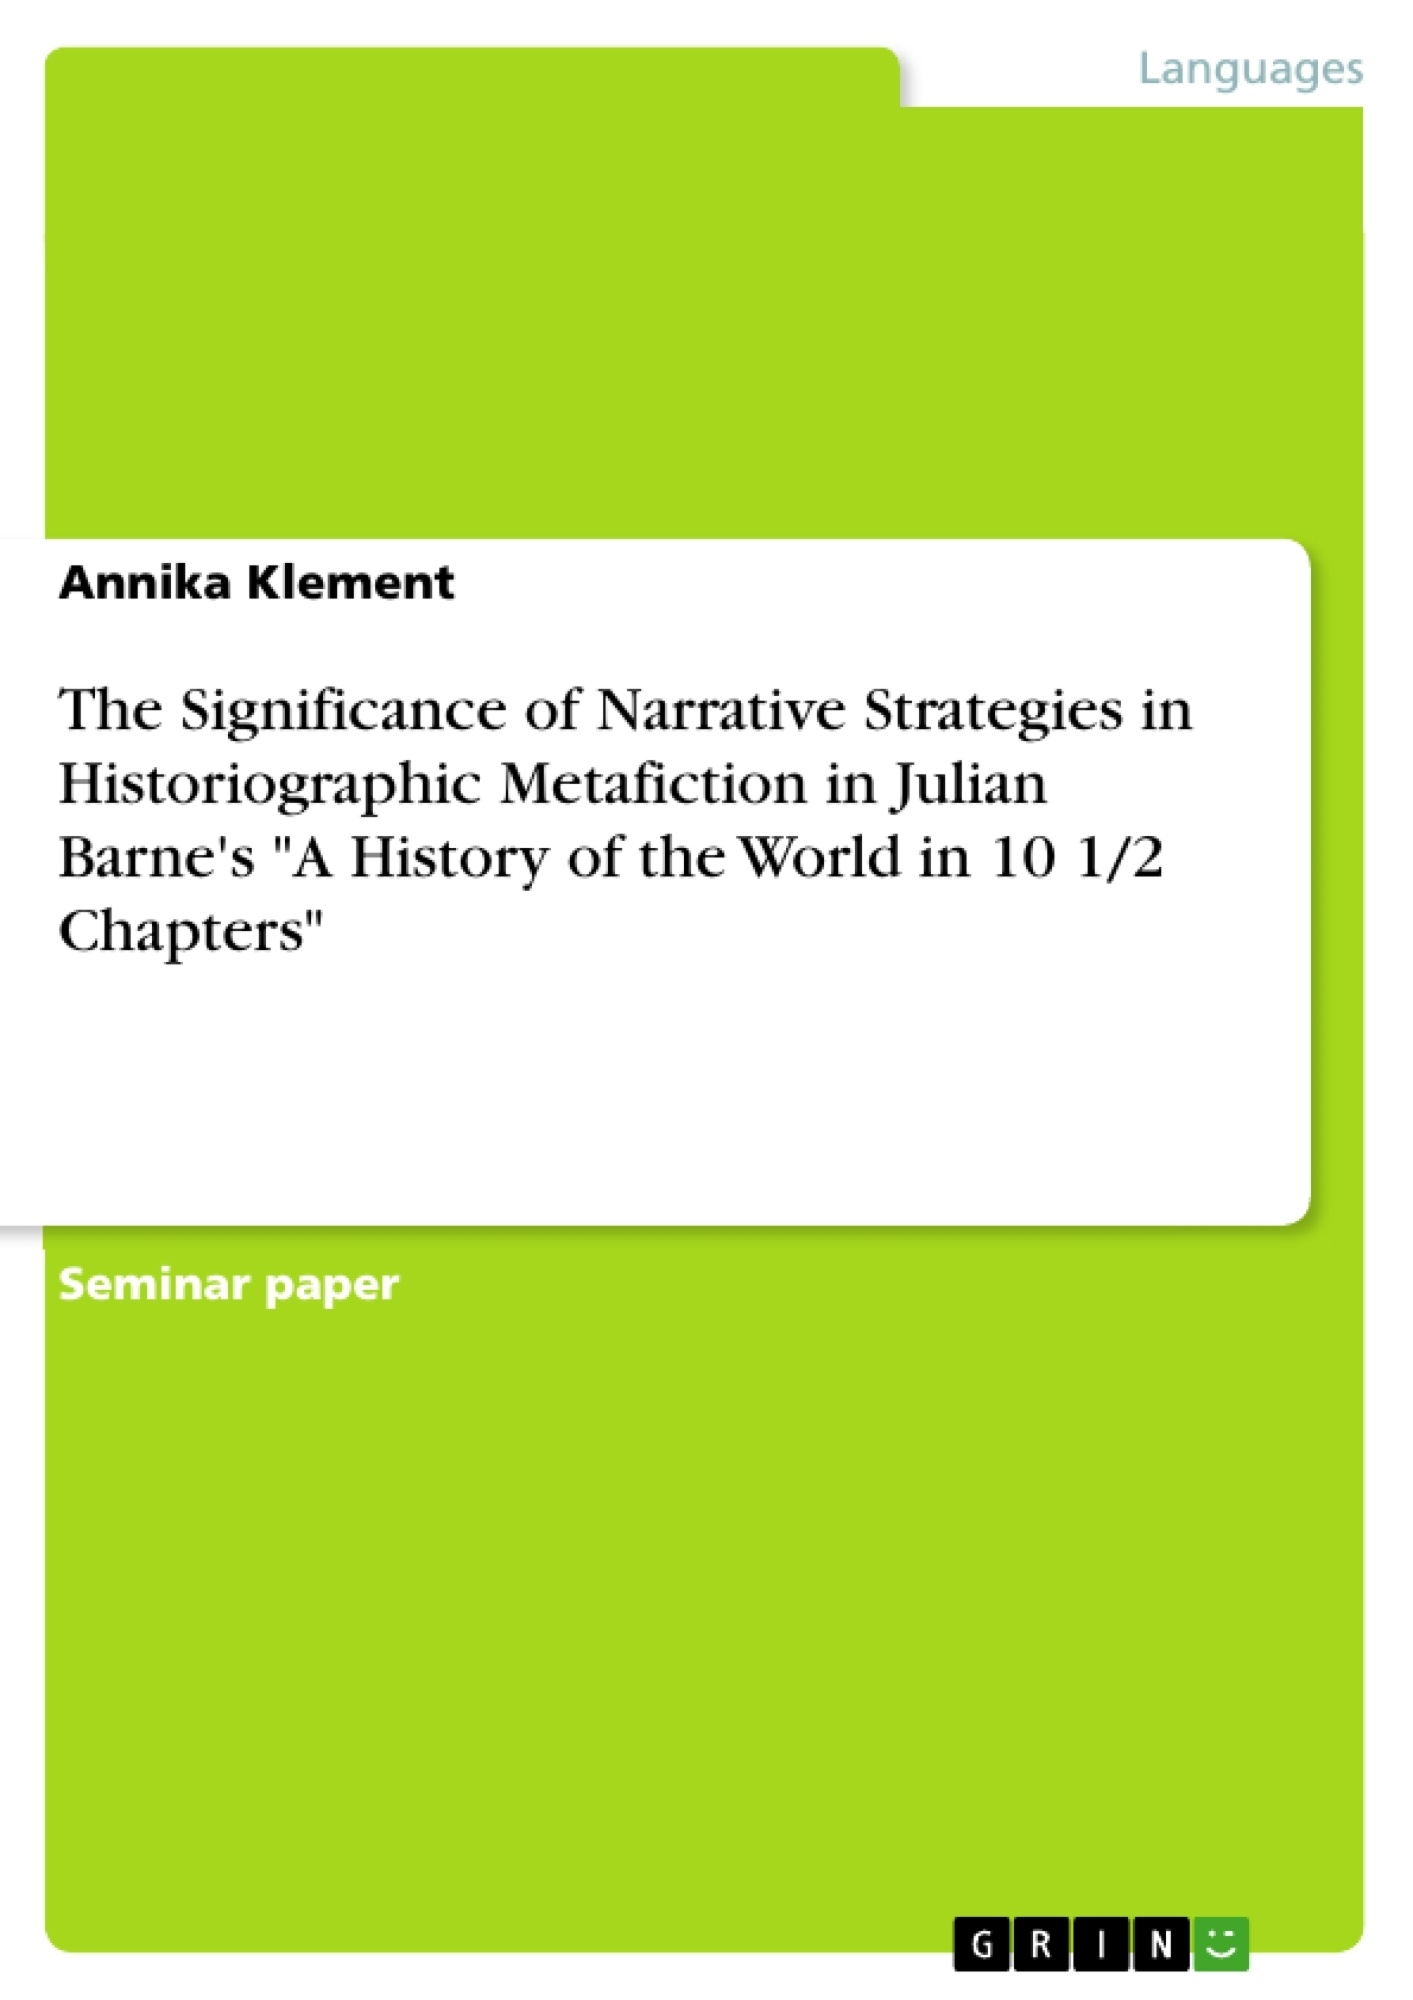 """Title: The Significance of Narrative Strategies in Historiographic Metafiction in Julian Barne's """"A History of the World in 10 1/2 Chapters"""""""